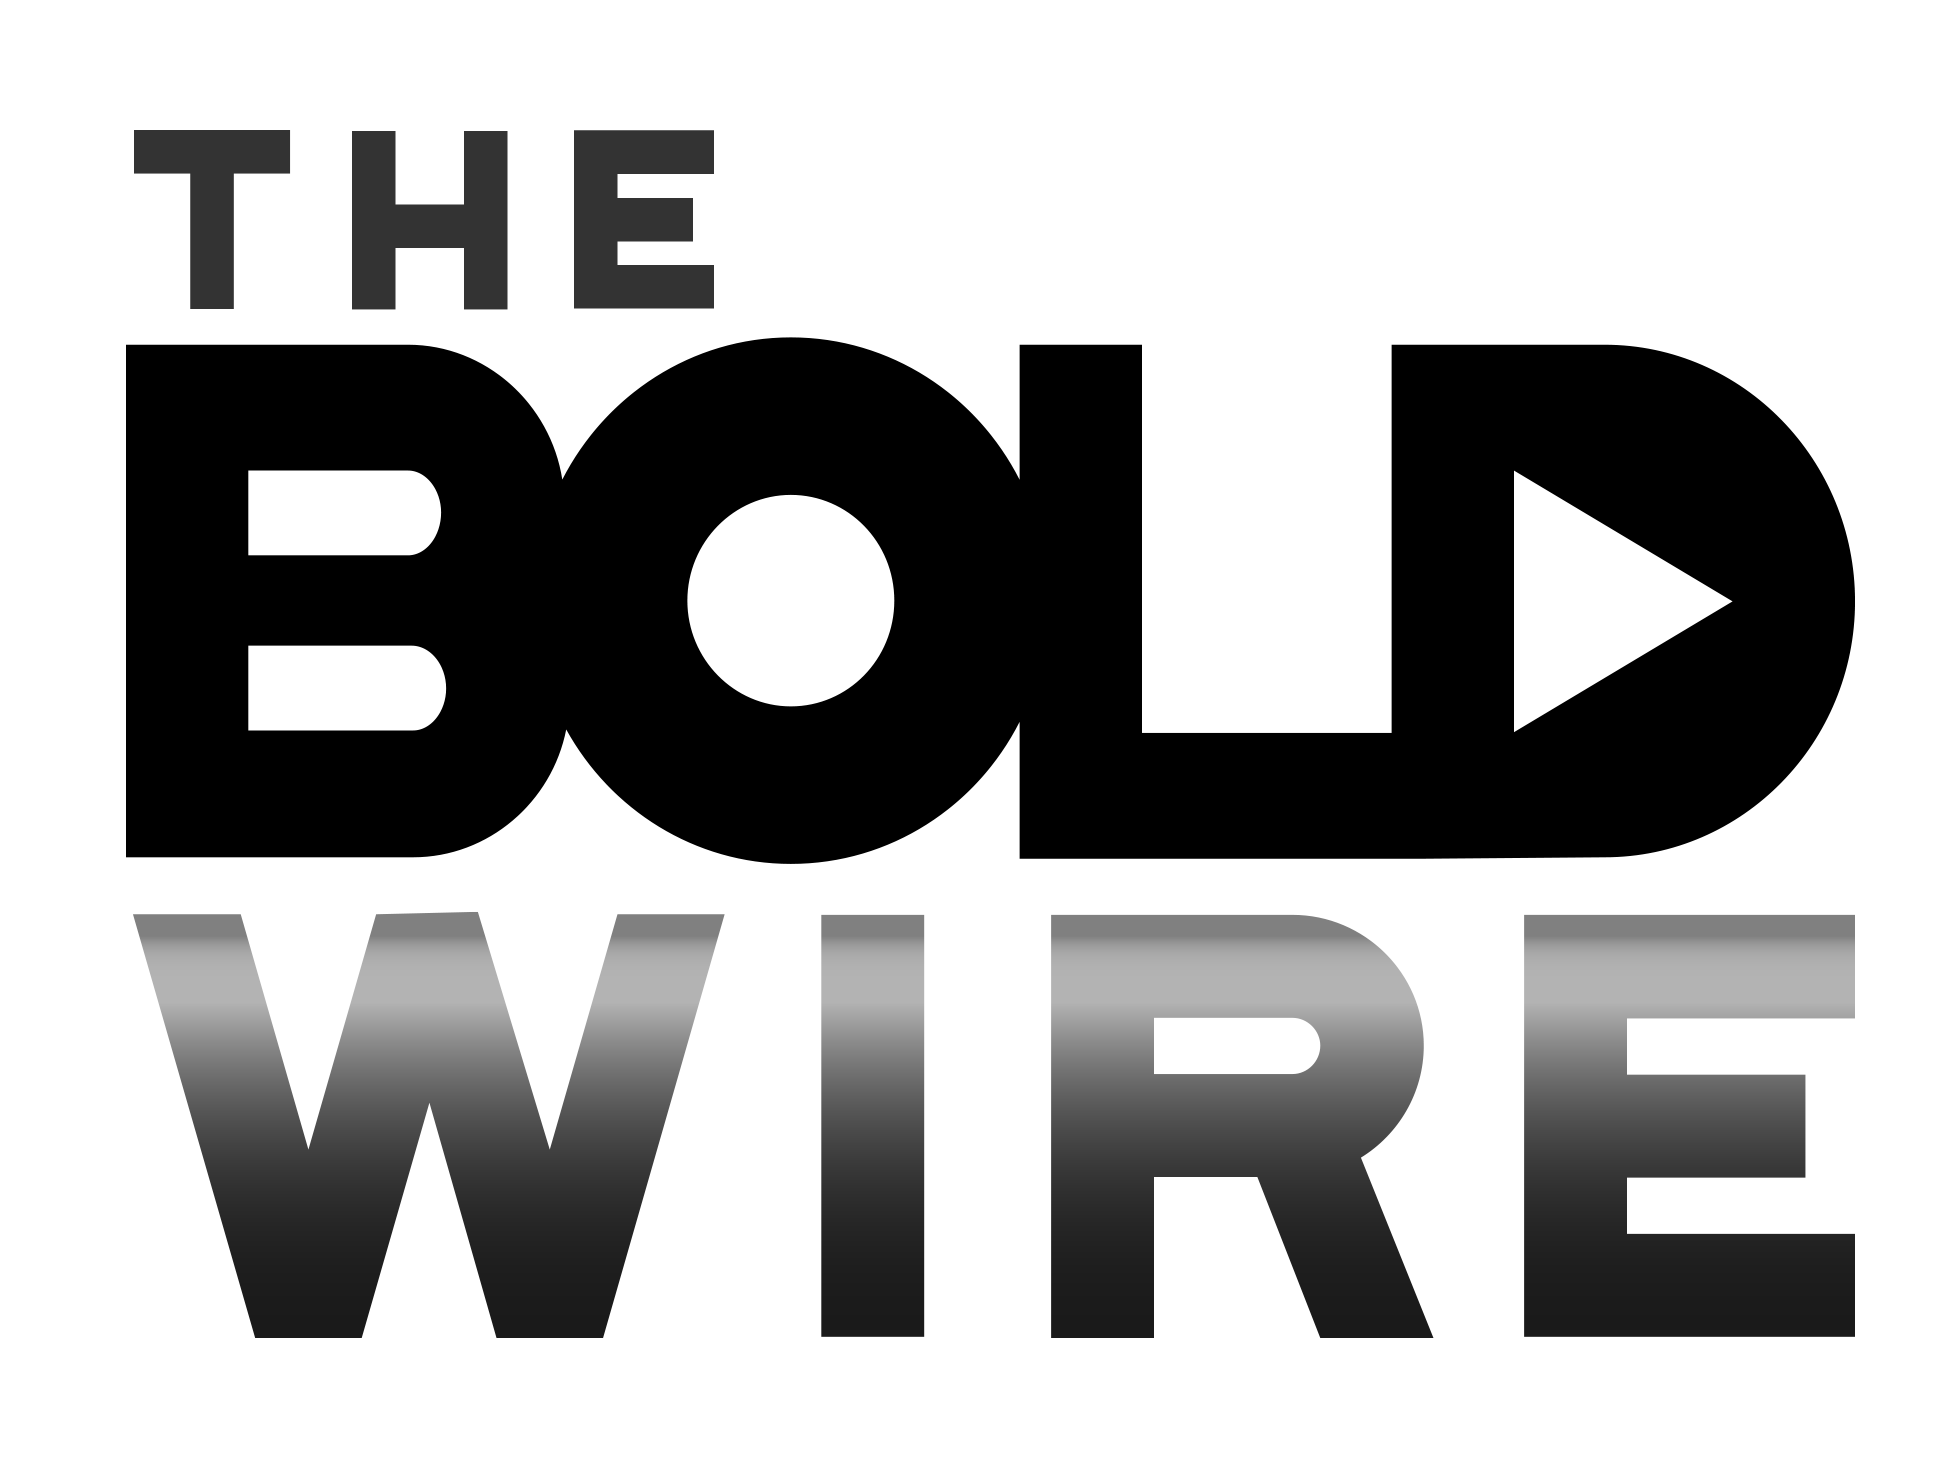 black and white logo of Bold Wire for Bold Business